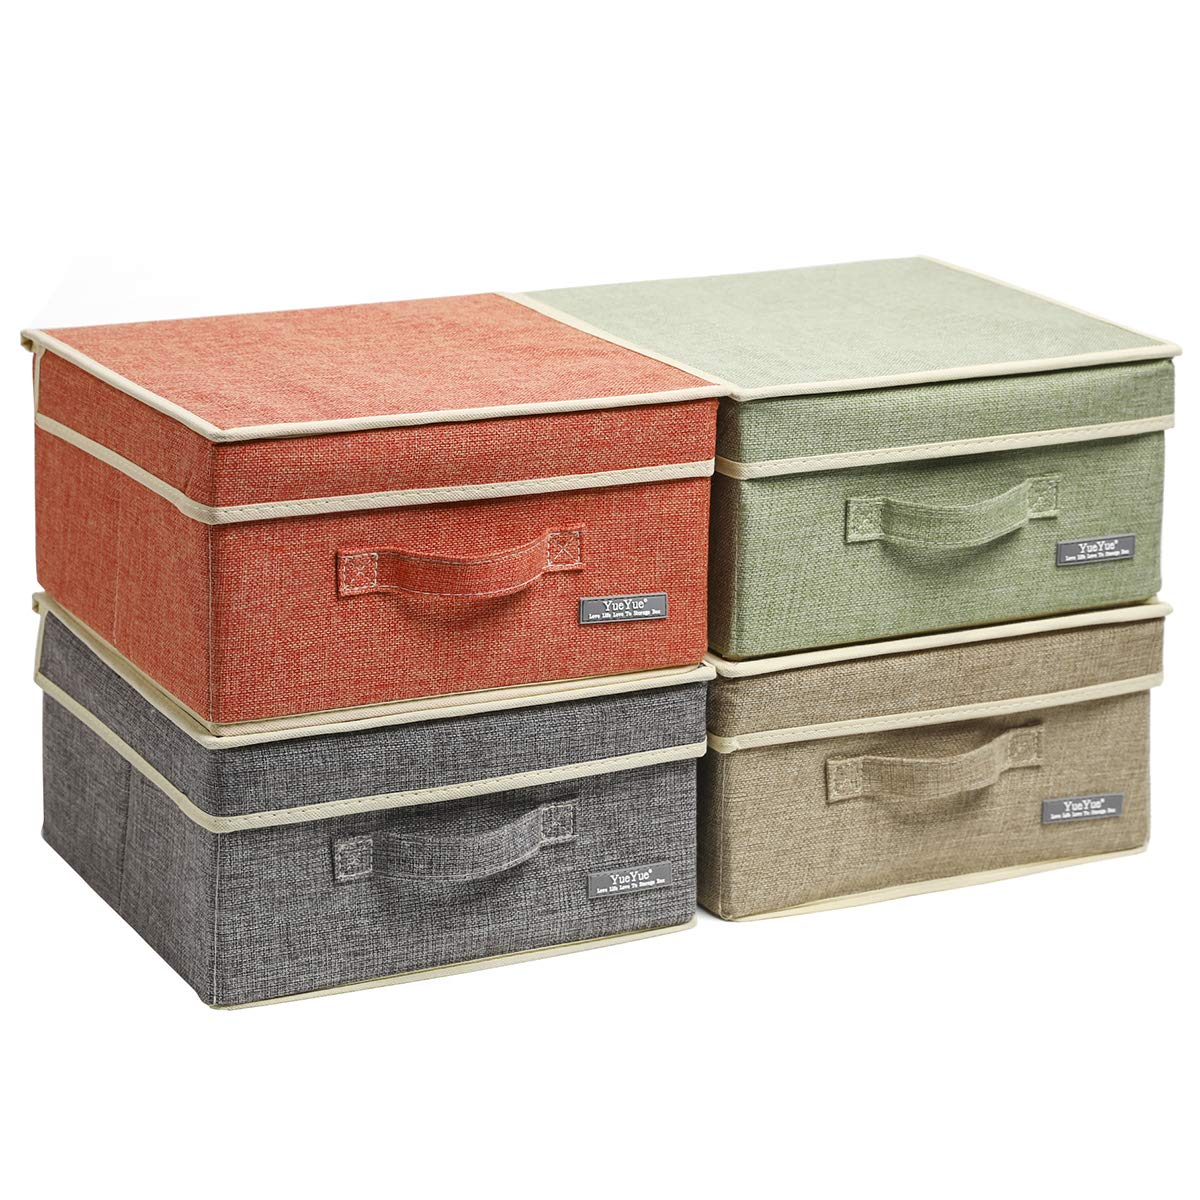 YueYue Small 4 Pack Foldable Fabric Storage Box with Lids Linen Storage Cubes Foldable Box Clothes Boxes Toys Boxes with Lids 4 Color Set 12.4in12in6.7in